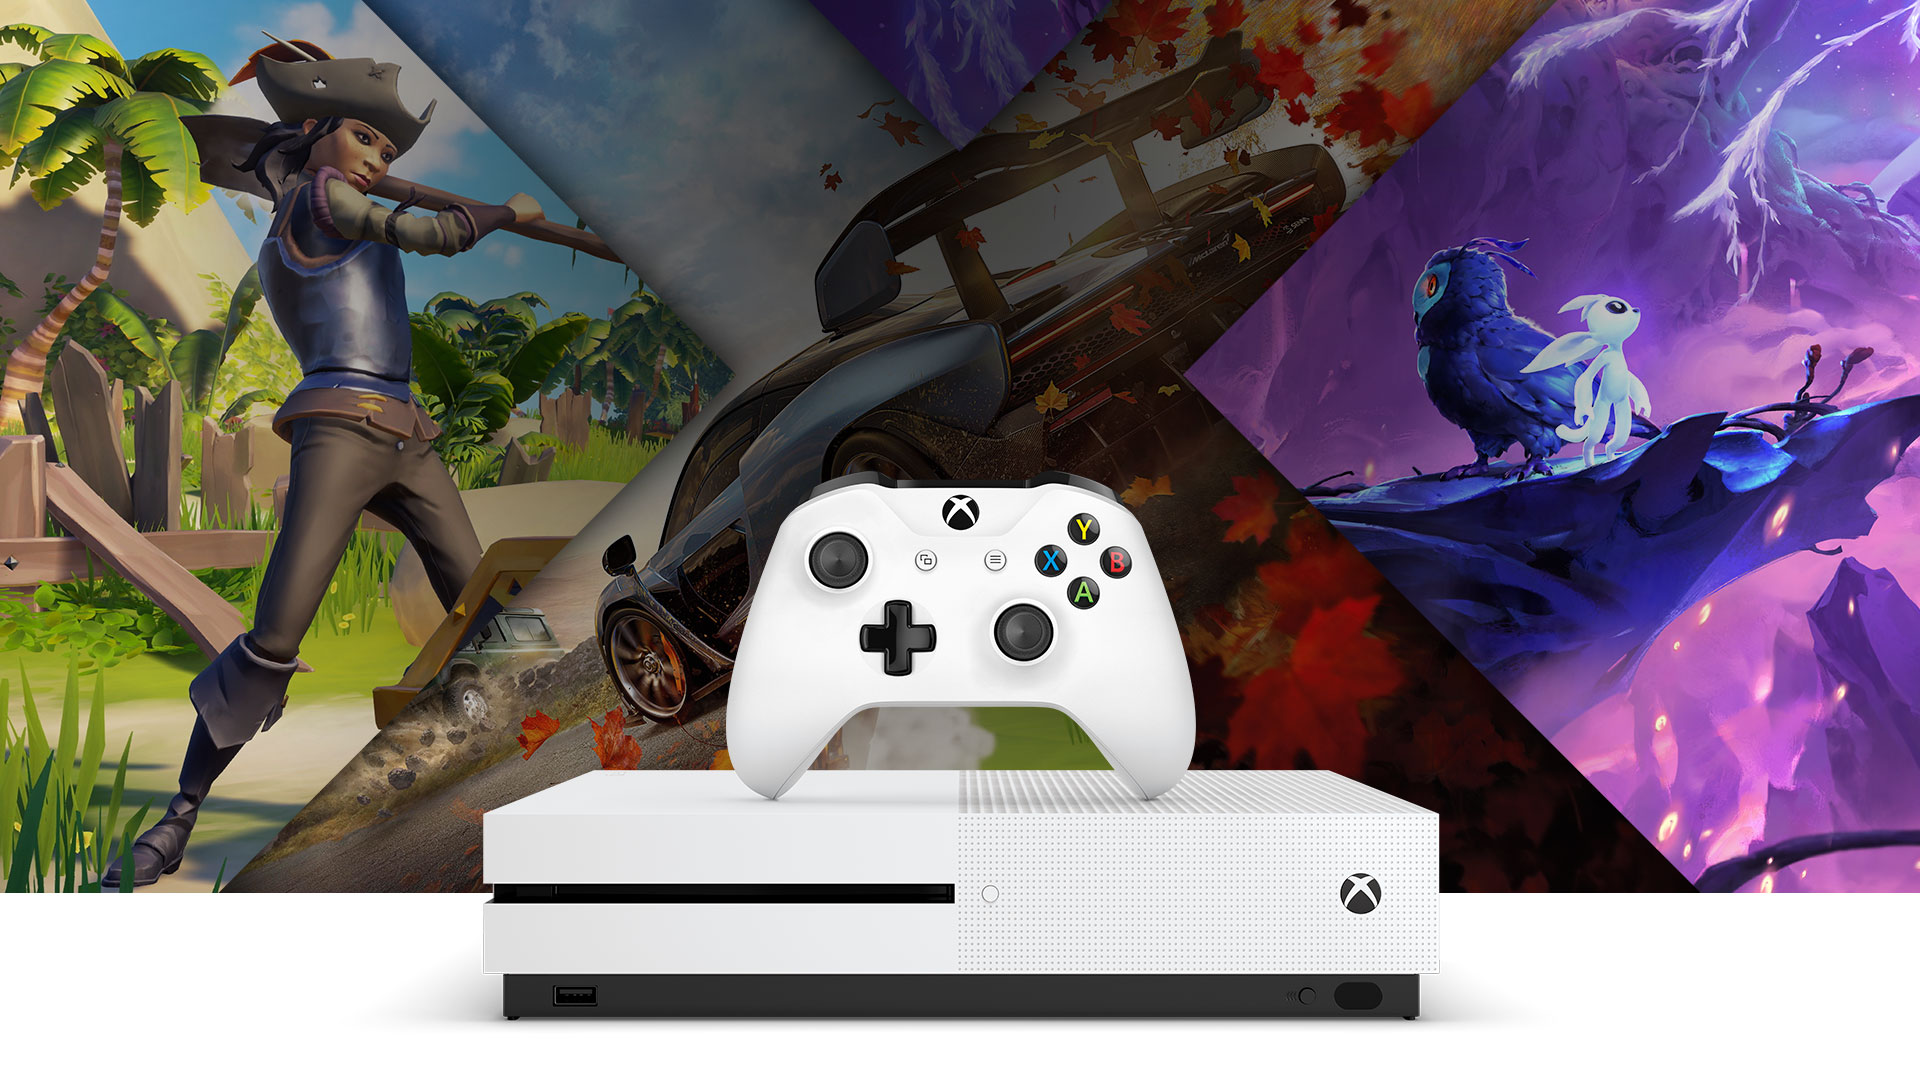 Vooraanzicht van de Xbox One S en een witte draadloze controller met daaromheen illustraties van Sea of Thieves, Forza Horizon 4, en Ori and the Will of Wisps